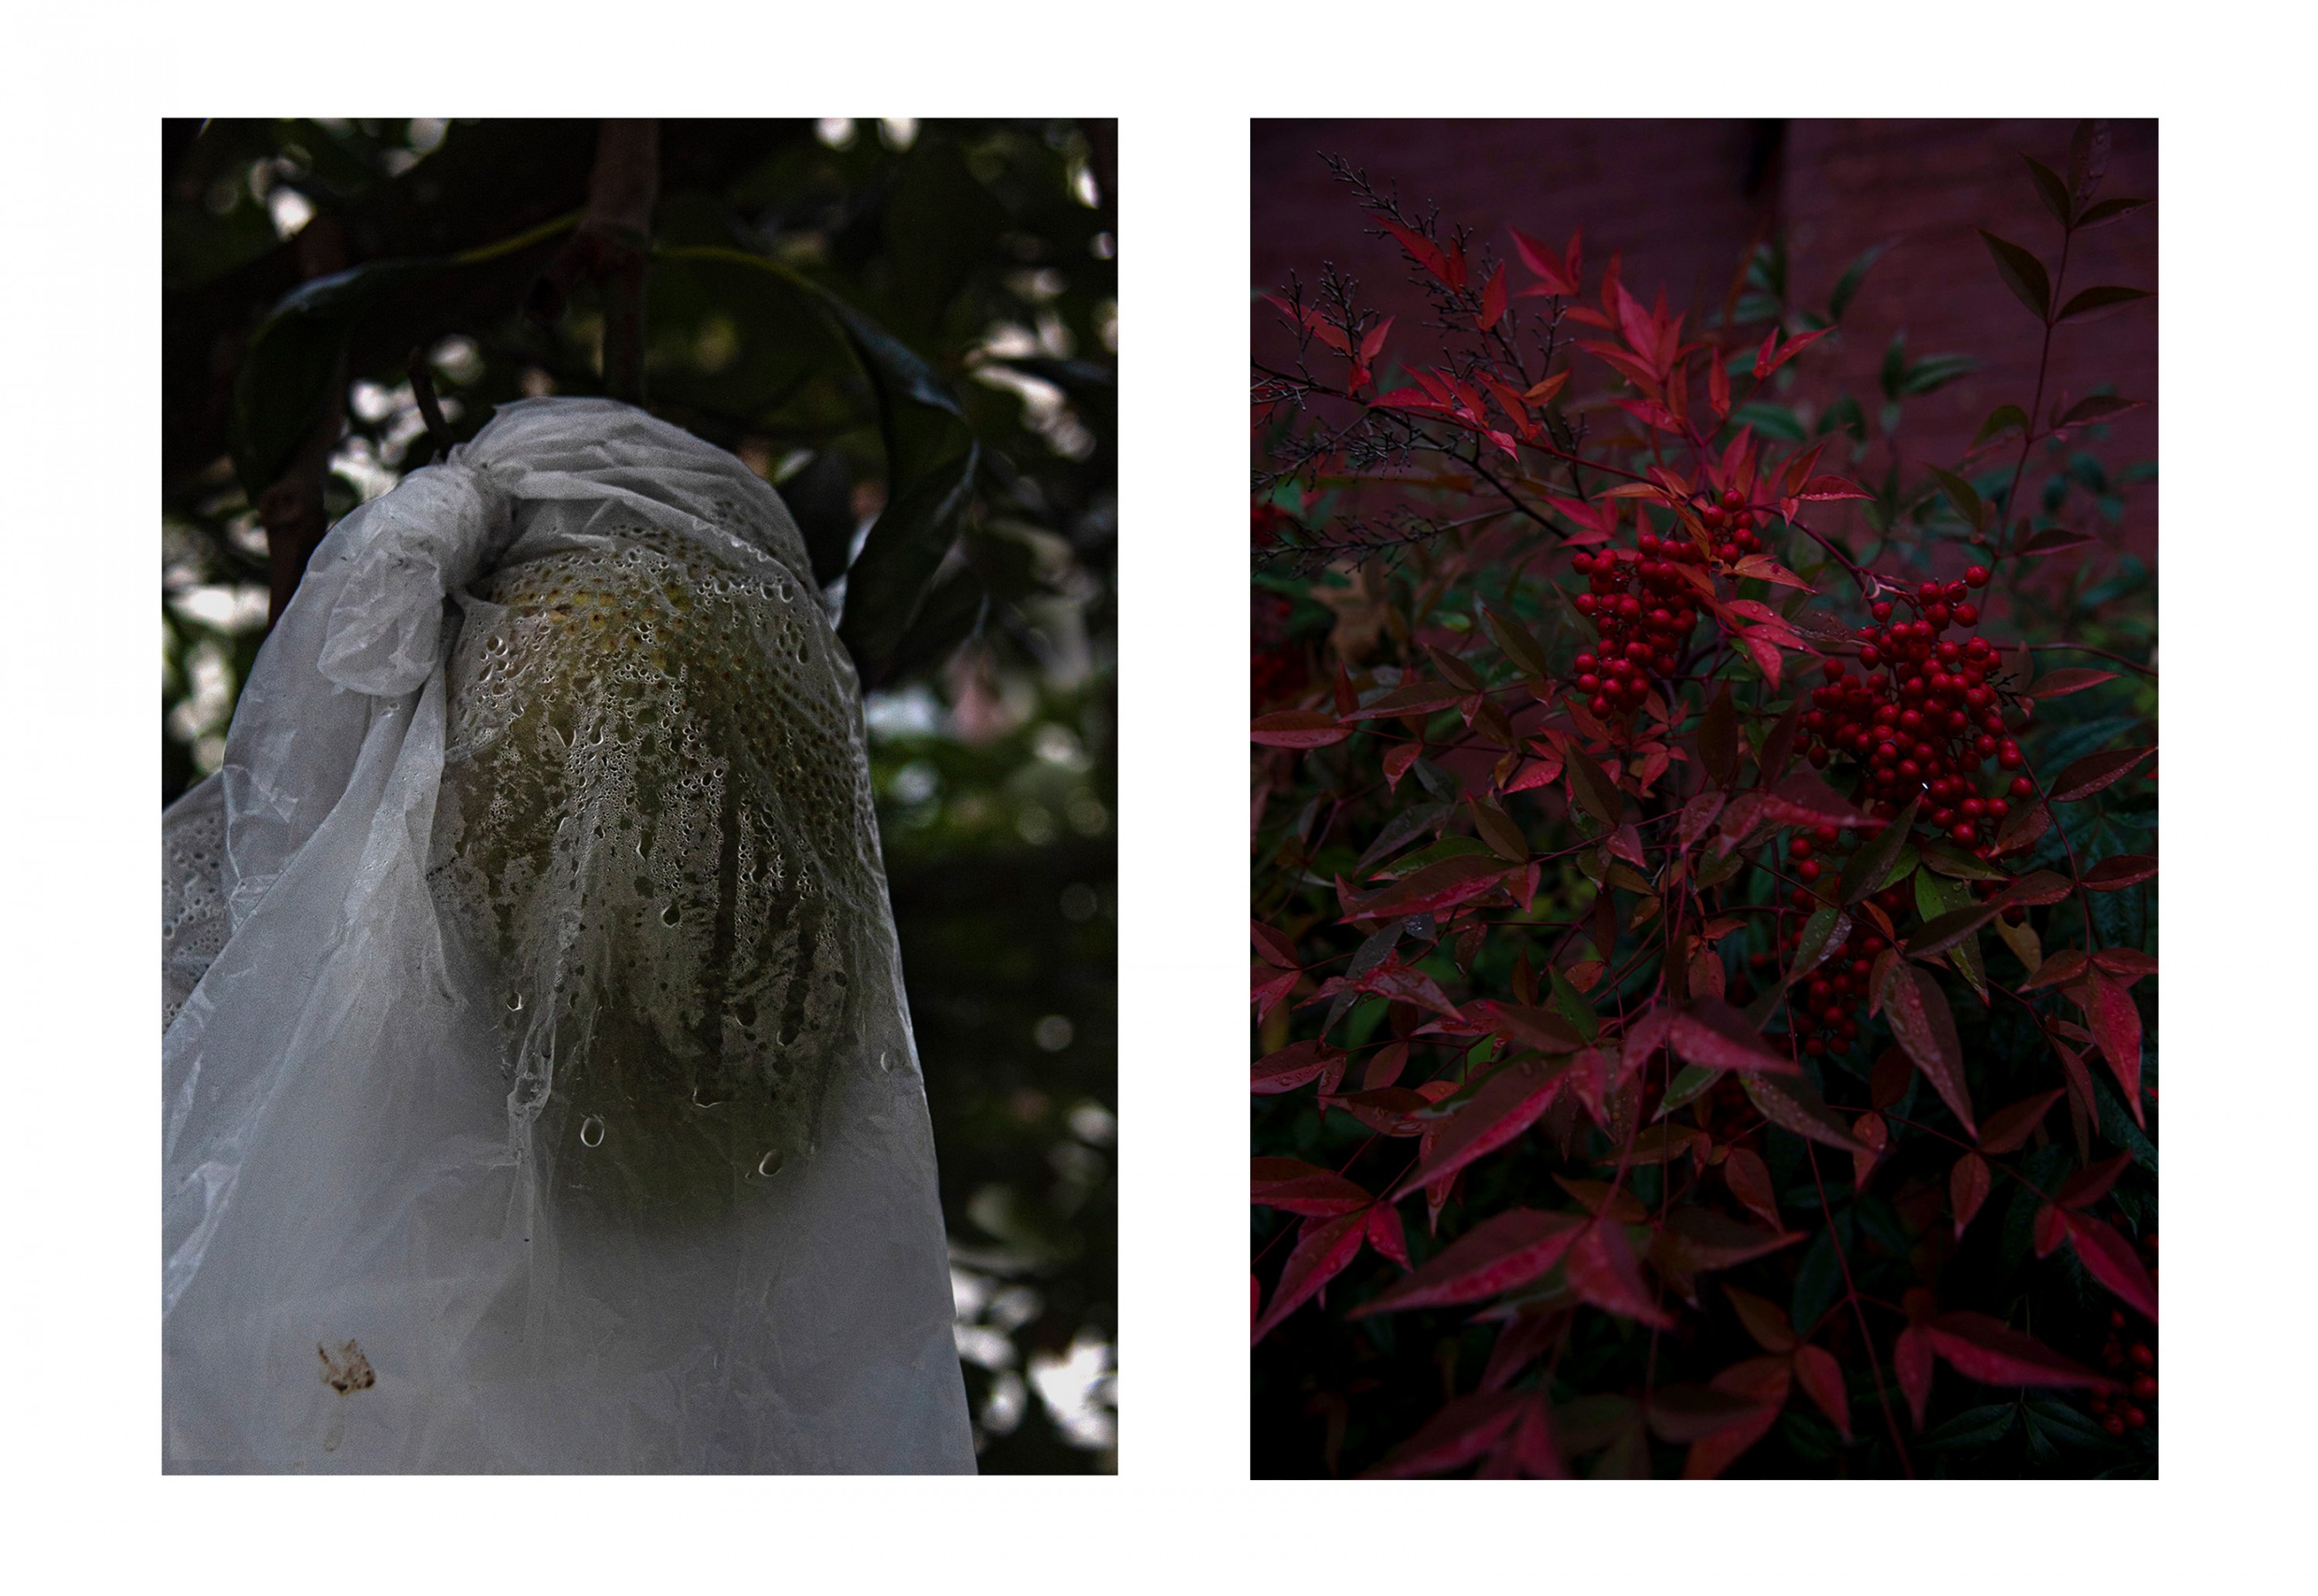 Two photographs next to each other, one on the left has jackfruit covered in a plastic bag hanging from the tree and the one on the right has red berries in a tree.